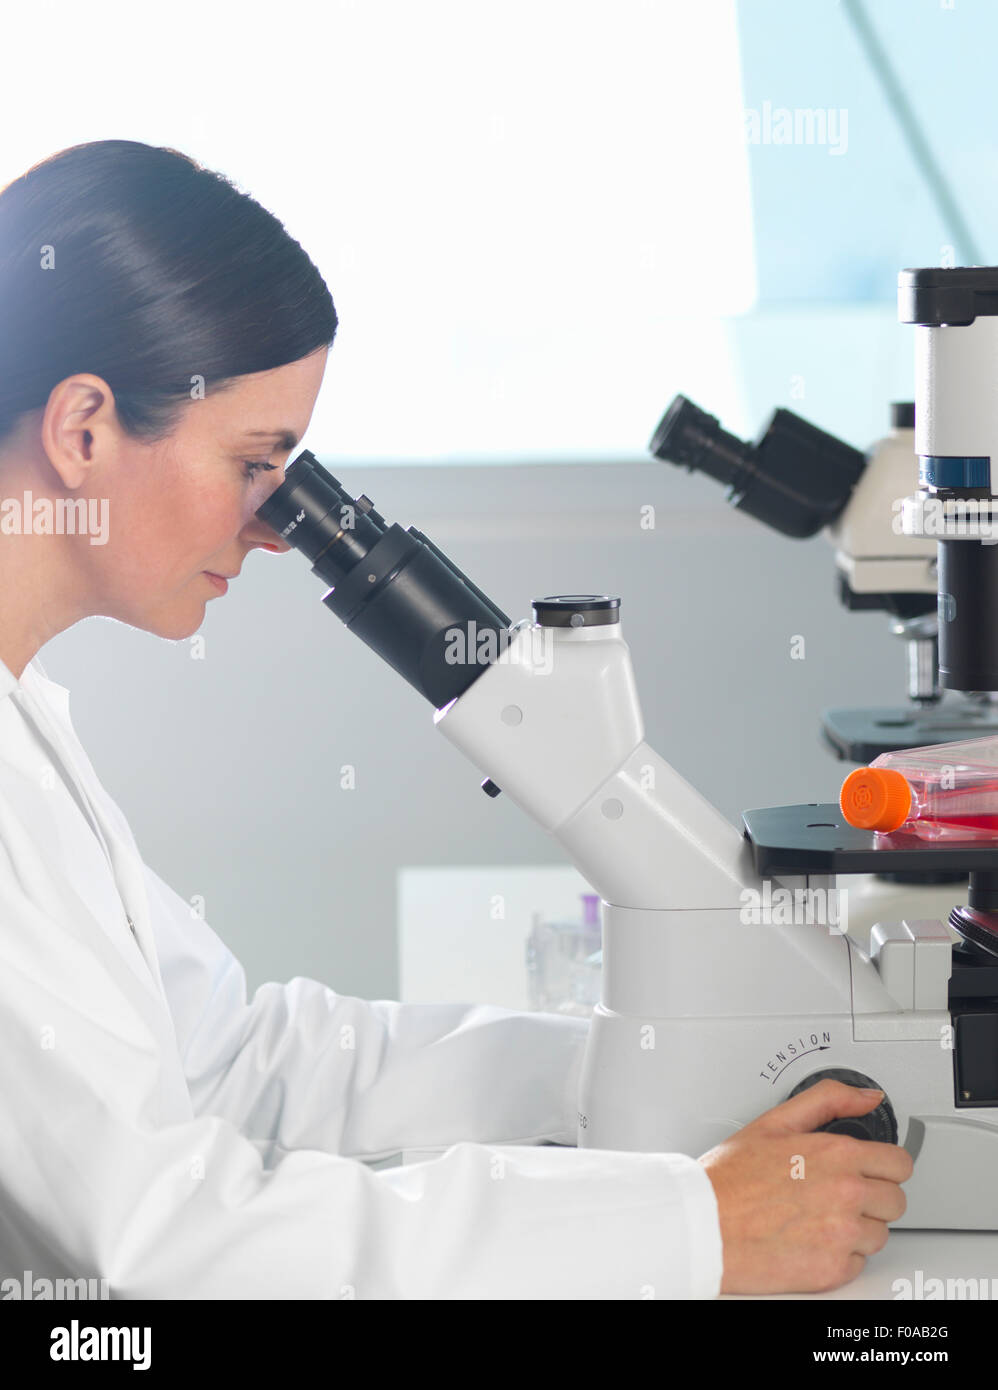 Scientist viewing cultures under inverted microscope for medical and pharmaceutical research - Stock Image